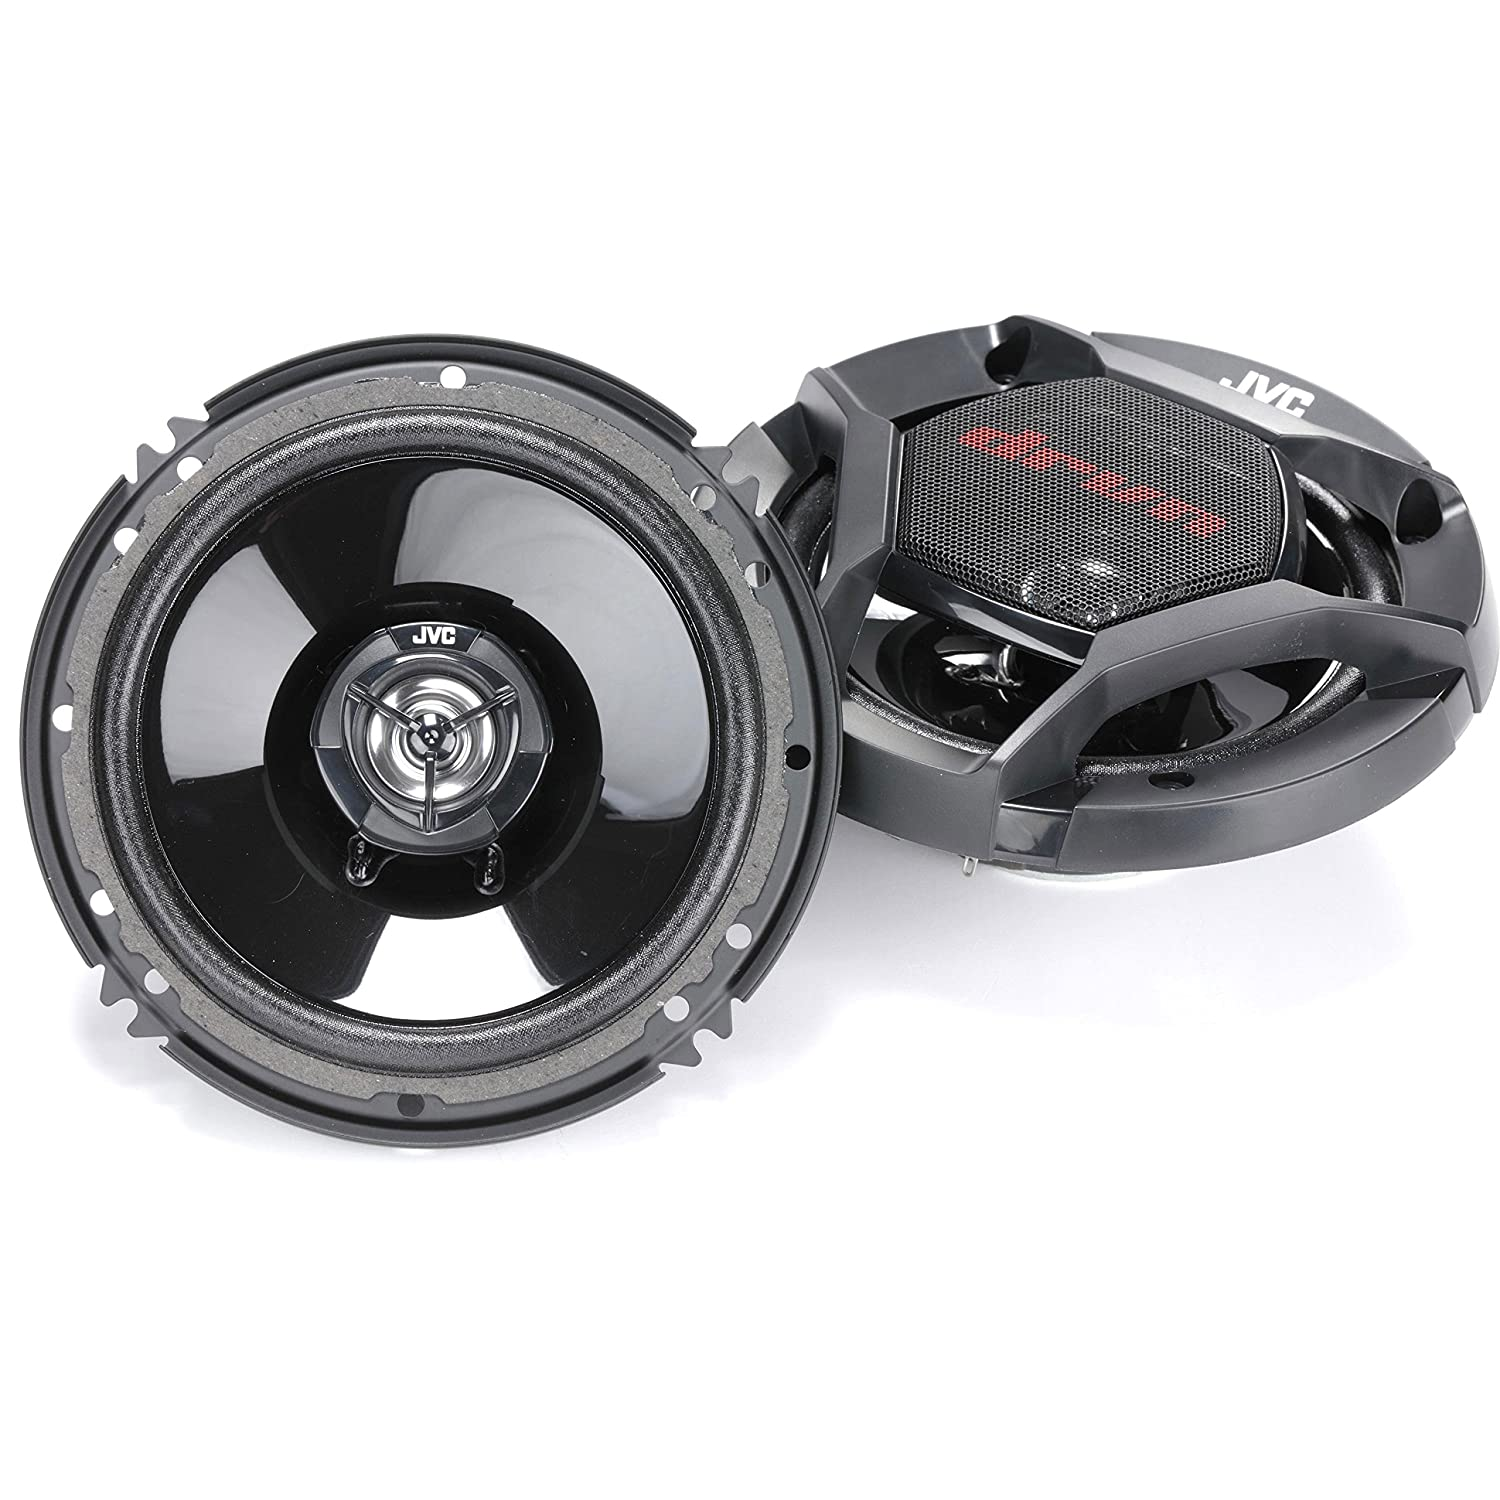 Car Speaker Bundle Combo 2x Jvc Dr620 65 2 Way 600 Rockford Fosgate Component Speakers Watt And Dr6940 6x9 Inch 1100 4 Dr Series Audio Coaxial Upgrade